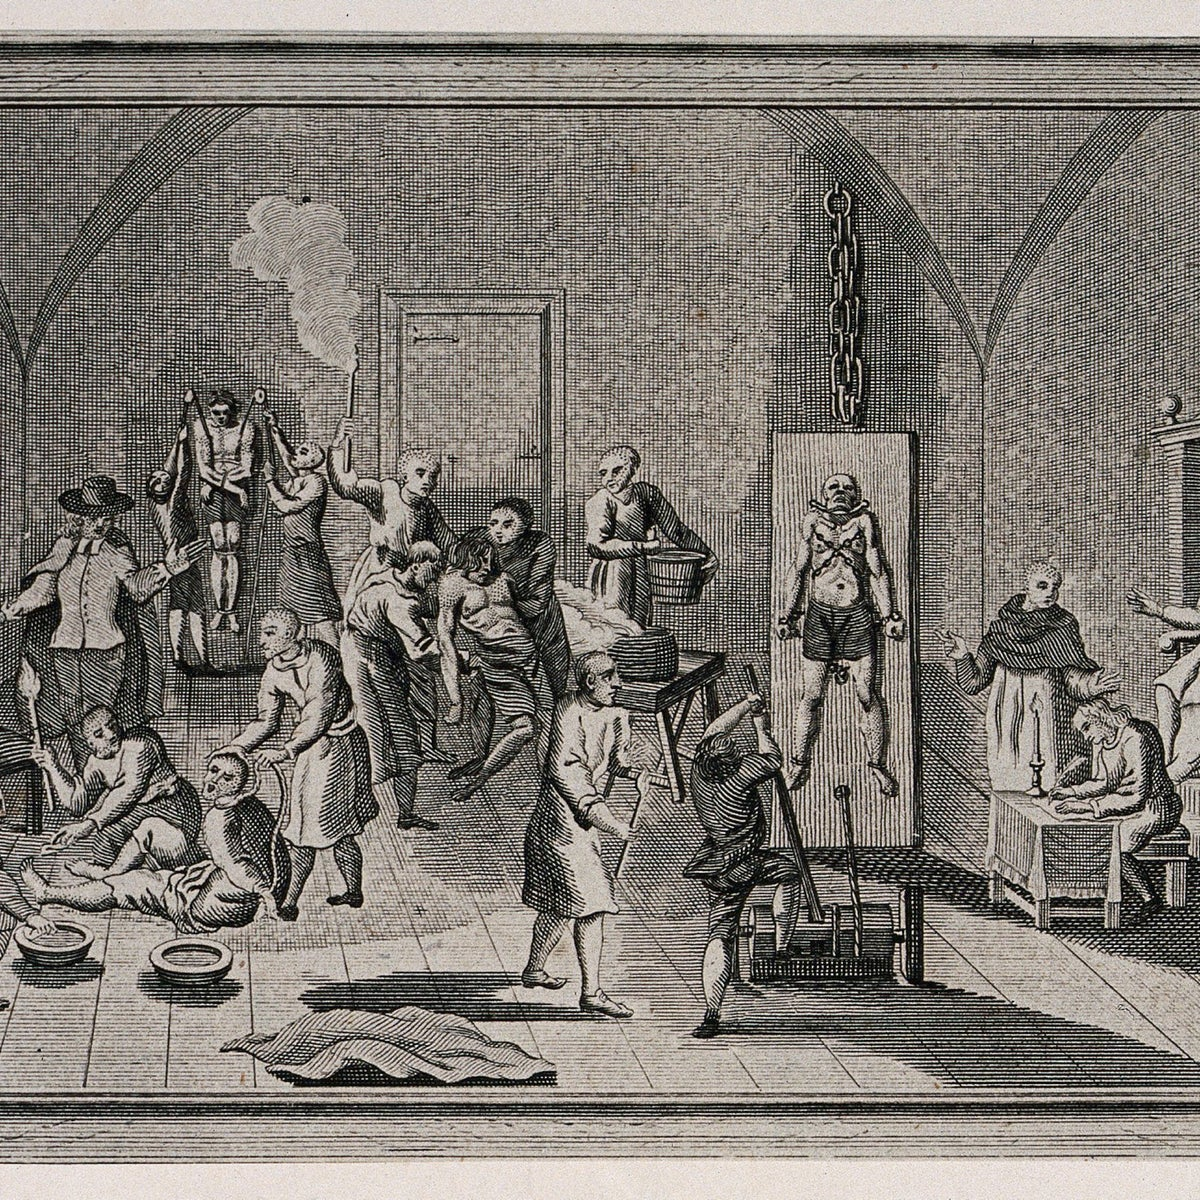 The inside of a jail of the Spanish Inquisition, with a priest supervising his scribe while men and women are suspended from pulleys, tortured on the rack or burnt with torches. Etching.